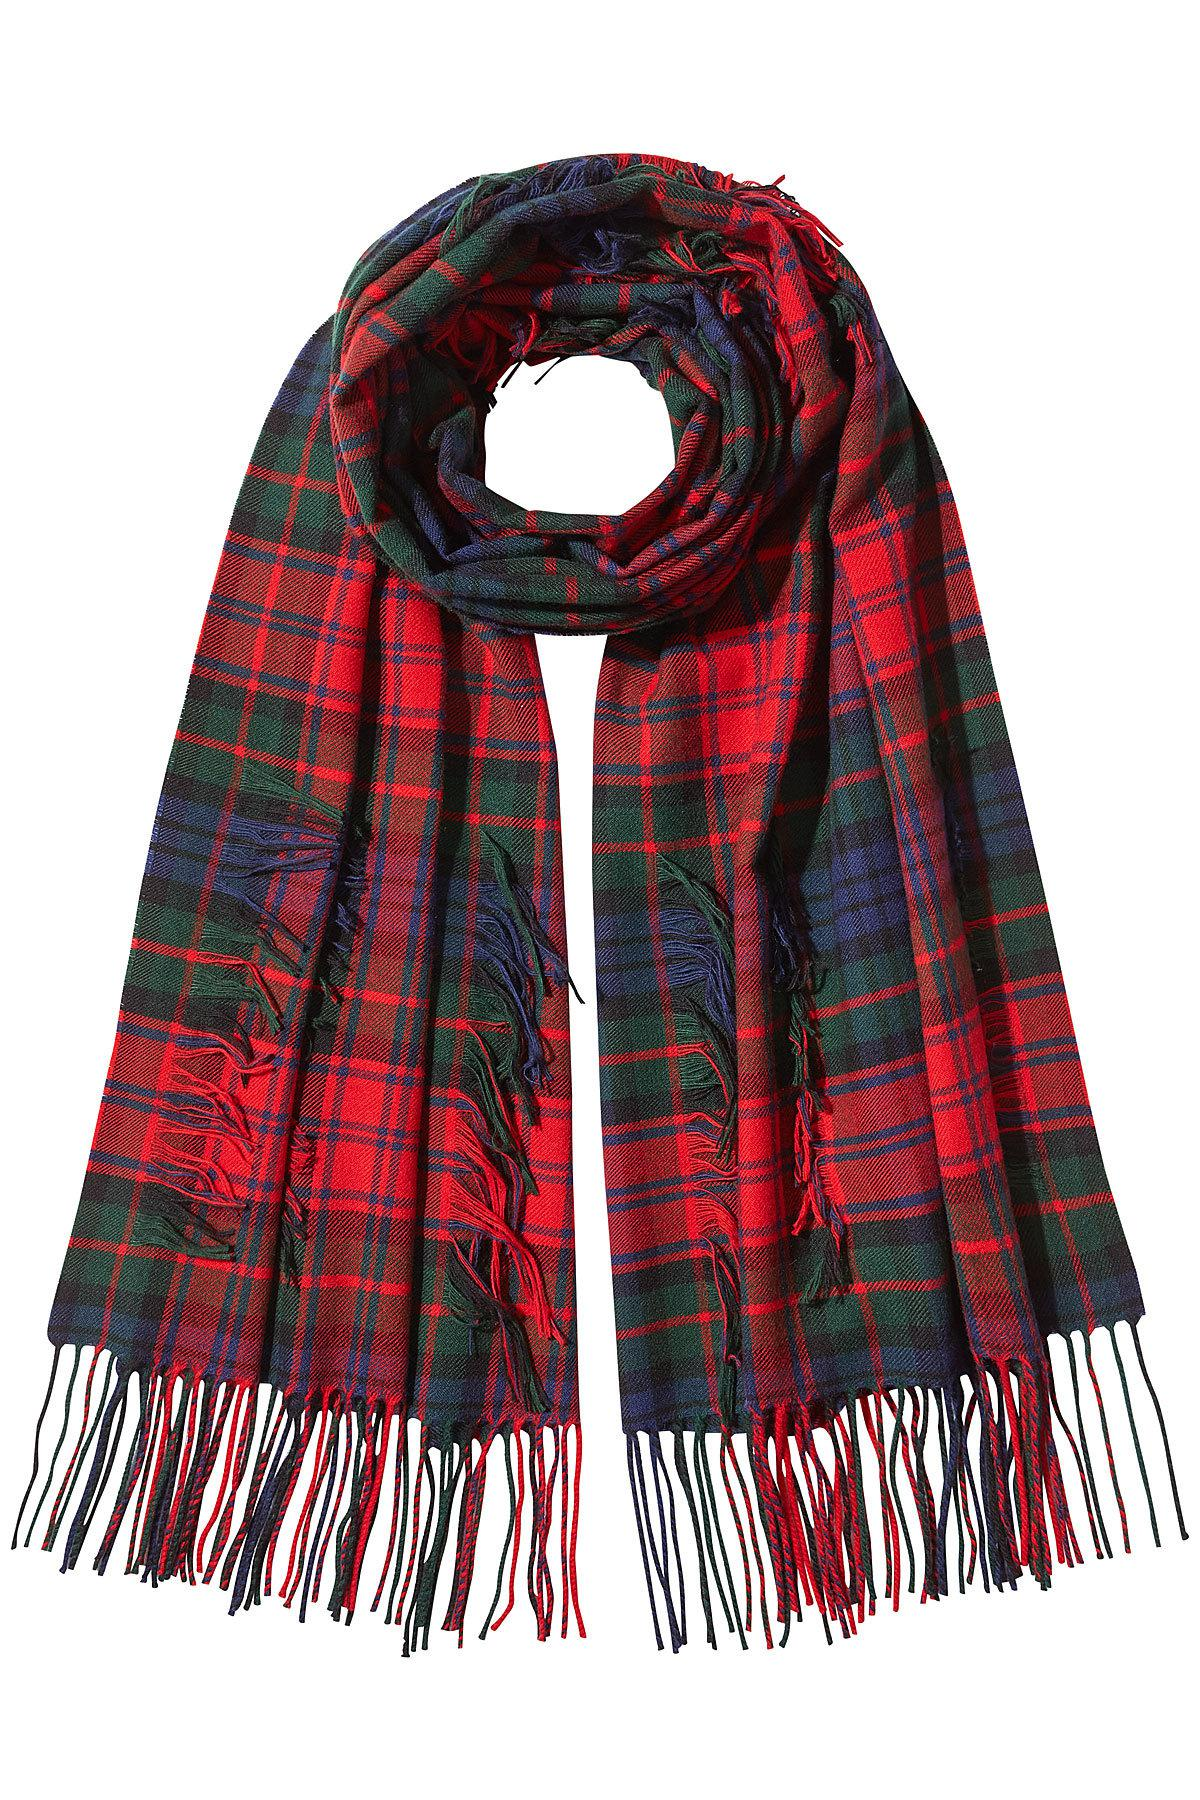 0c52cac90b1d Lyst - Burberry Tartan Check Fringe Scarf in Red